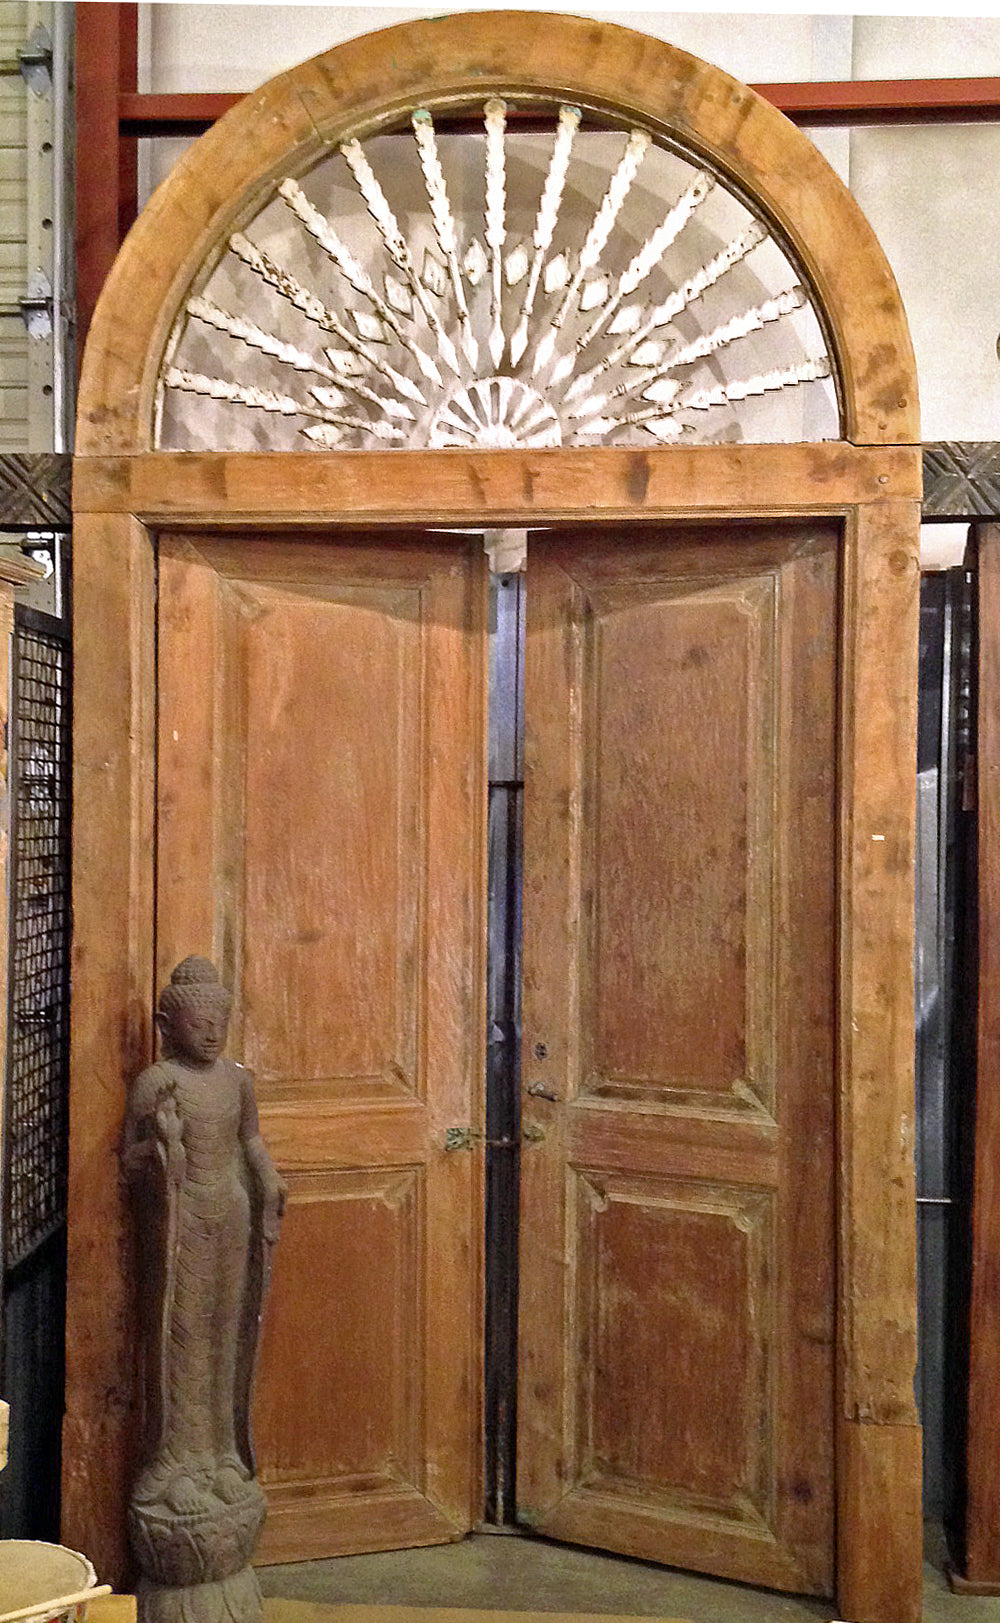 Extra large one of a kind reclaimed salvaged teak door with an arched top and steel arrow details with original hardware from Madura island in Indonesia